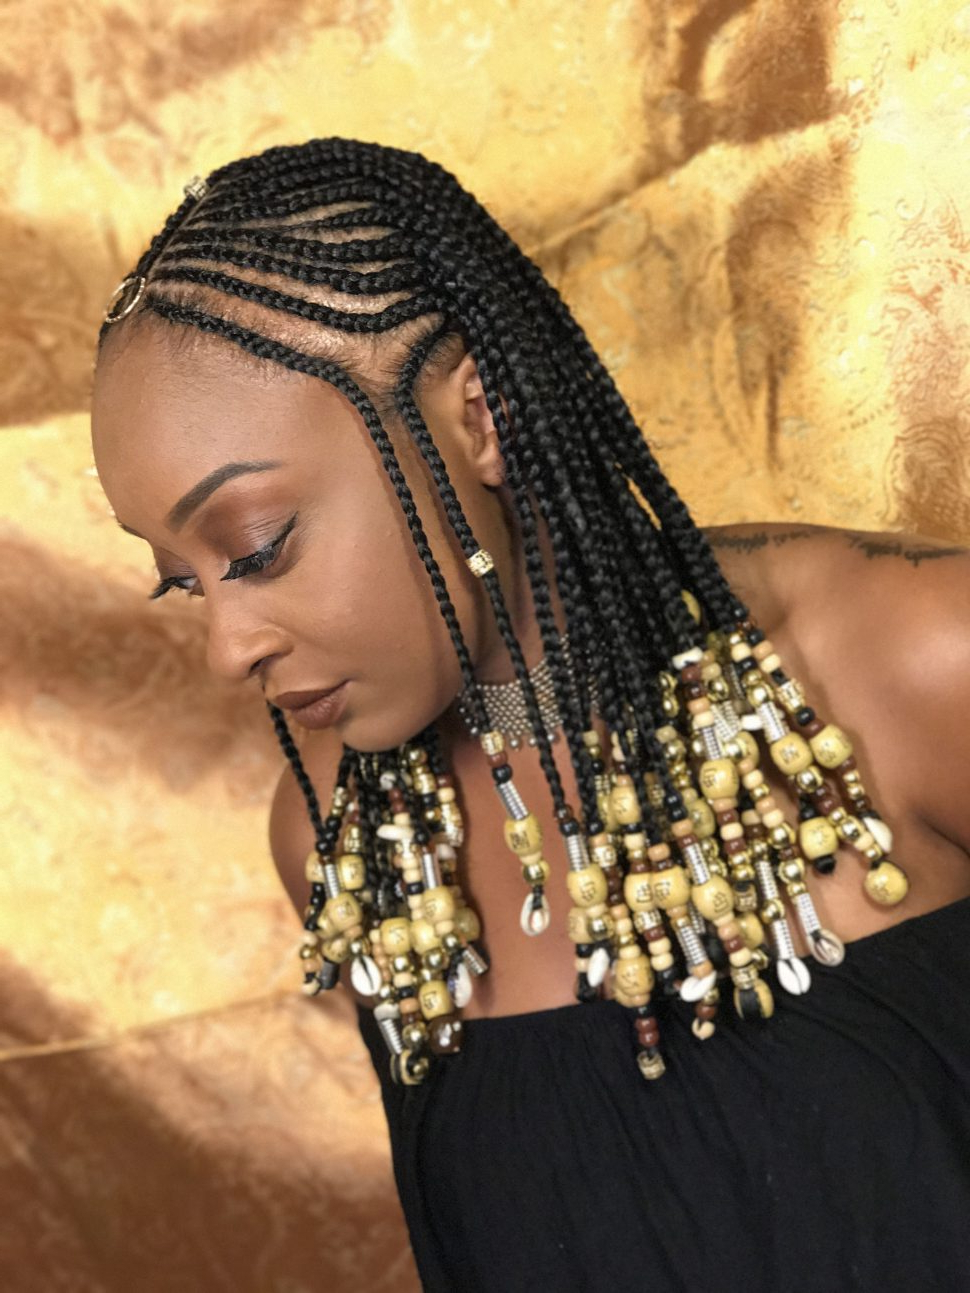 Hairstyles : African Braid Hairstyles Black American Braided With Most Up To Date Short Beaded Bob Hairstyles (View 13 of 20)